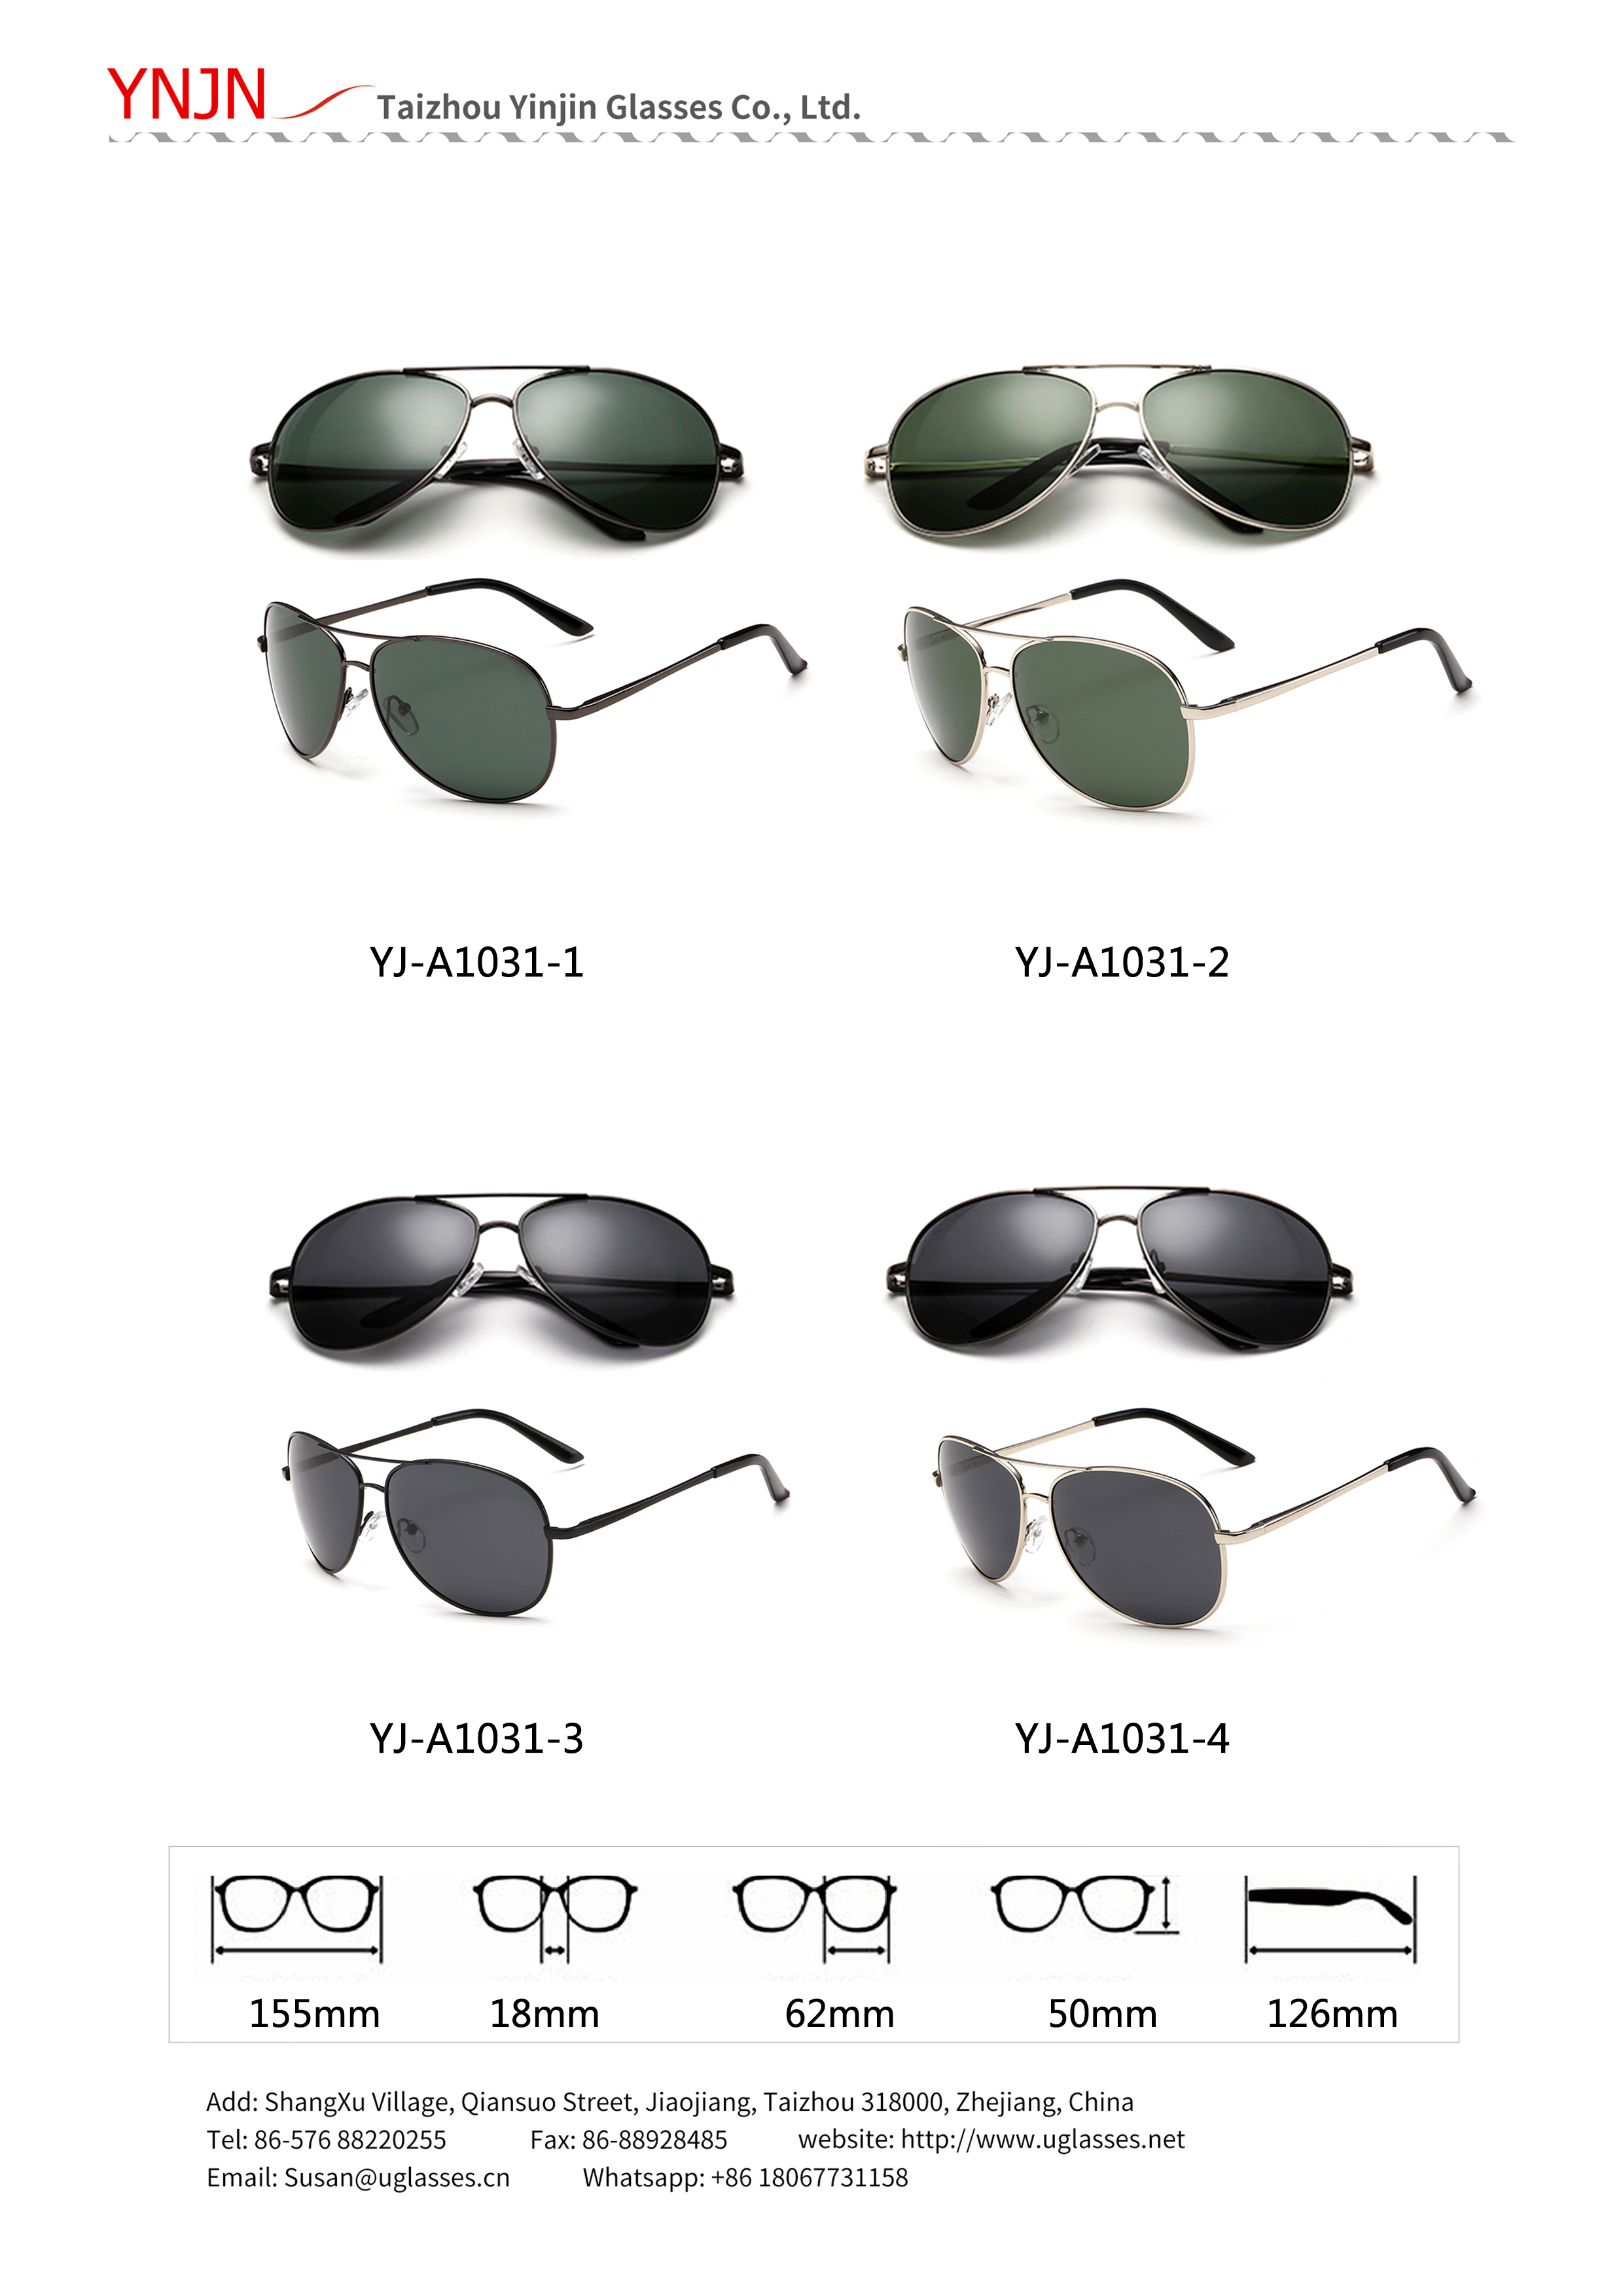 Taizhou Yinjin men sunglasses catalogs